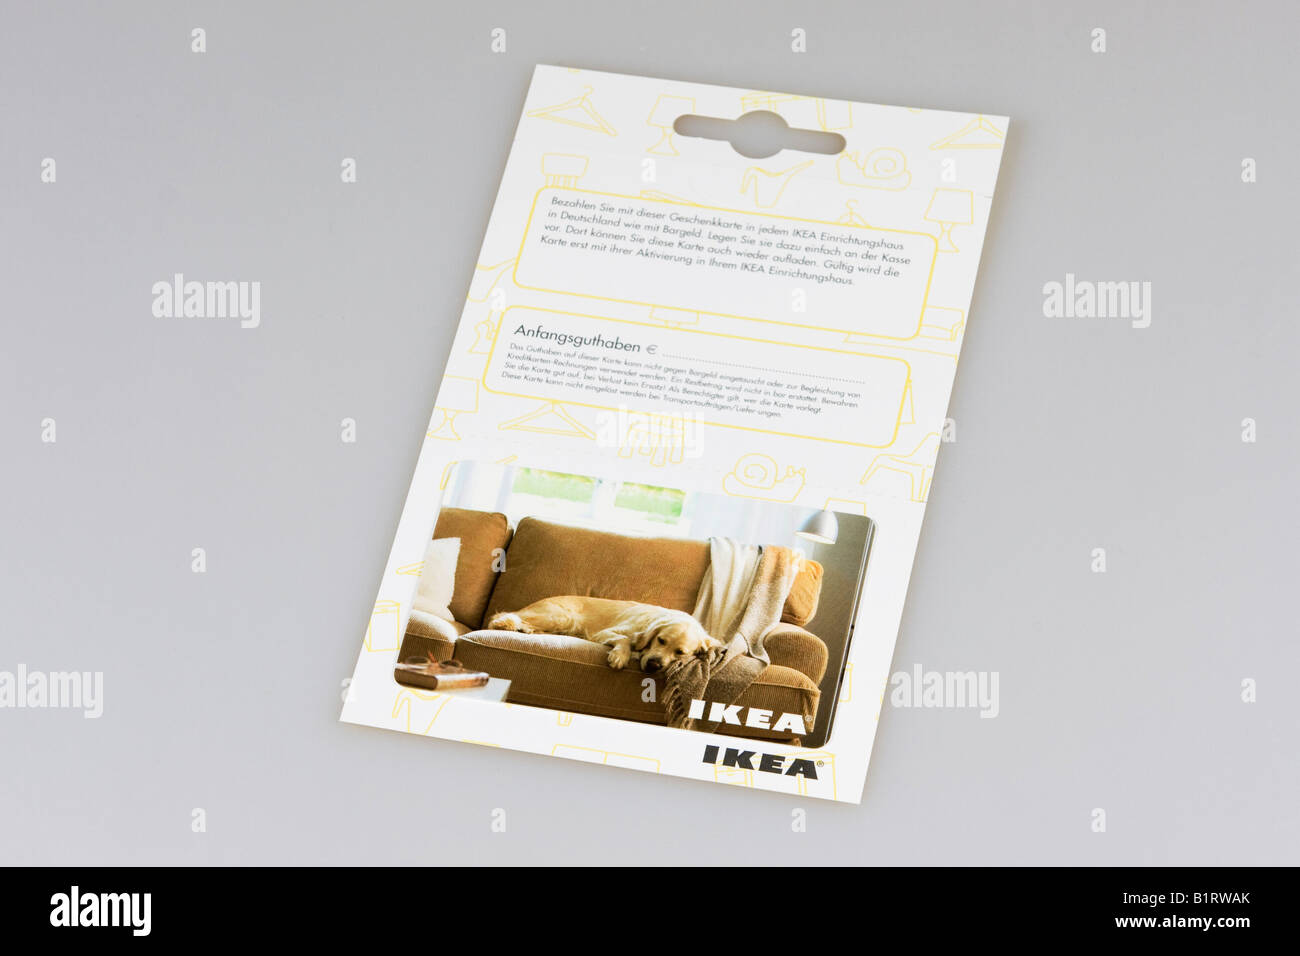 Ikea Card Stock Photos Ikea Card Stock Images Alamy